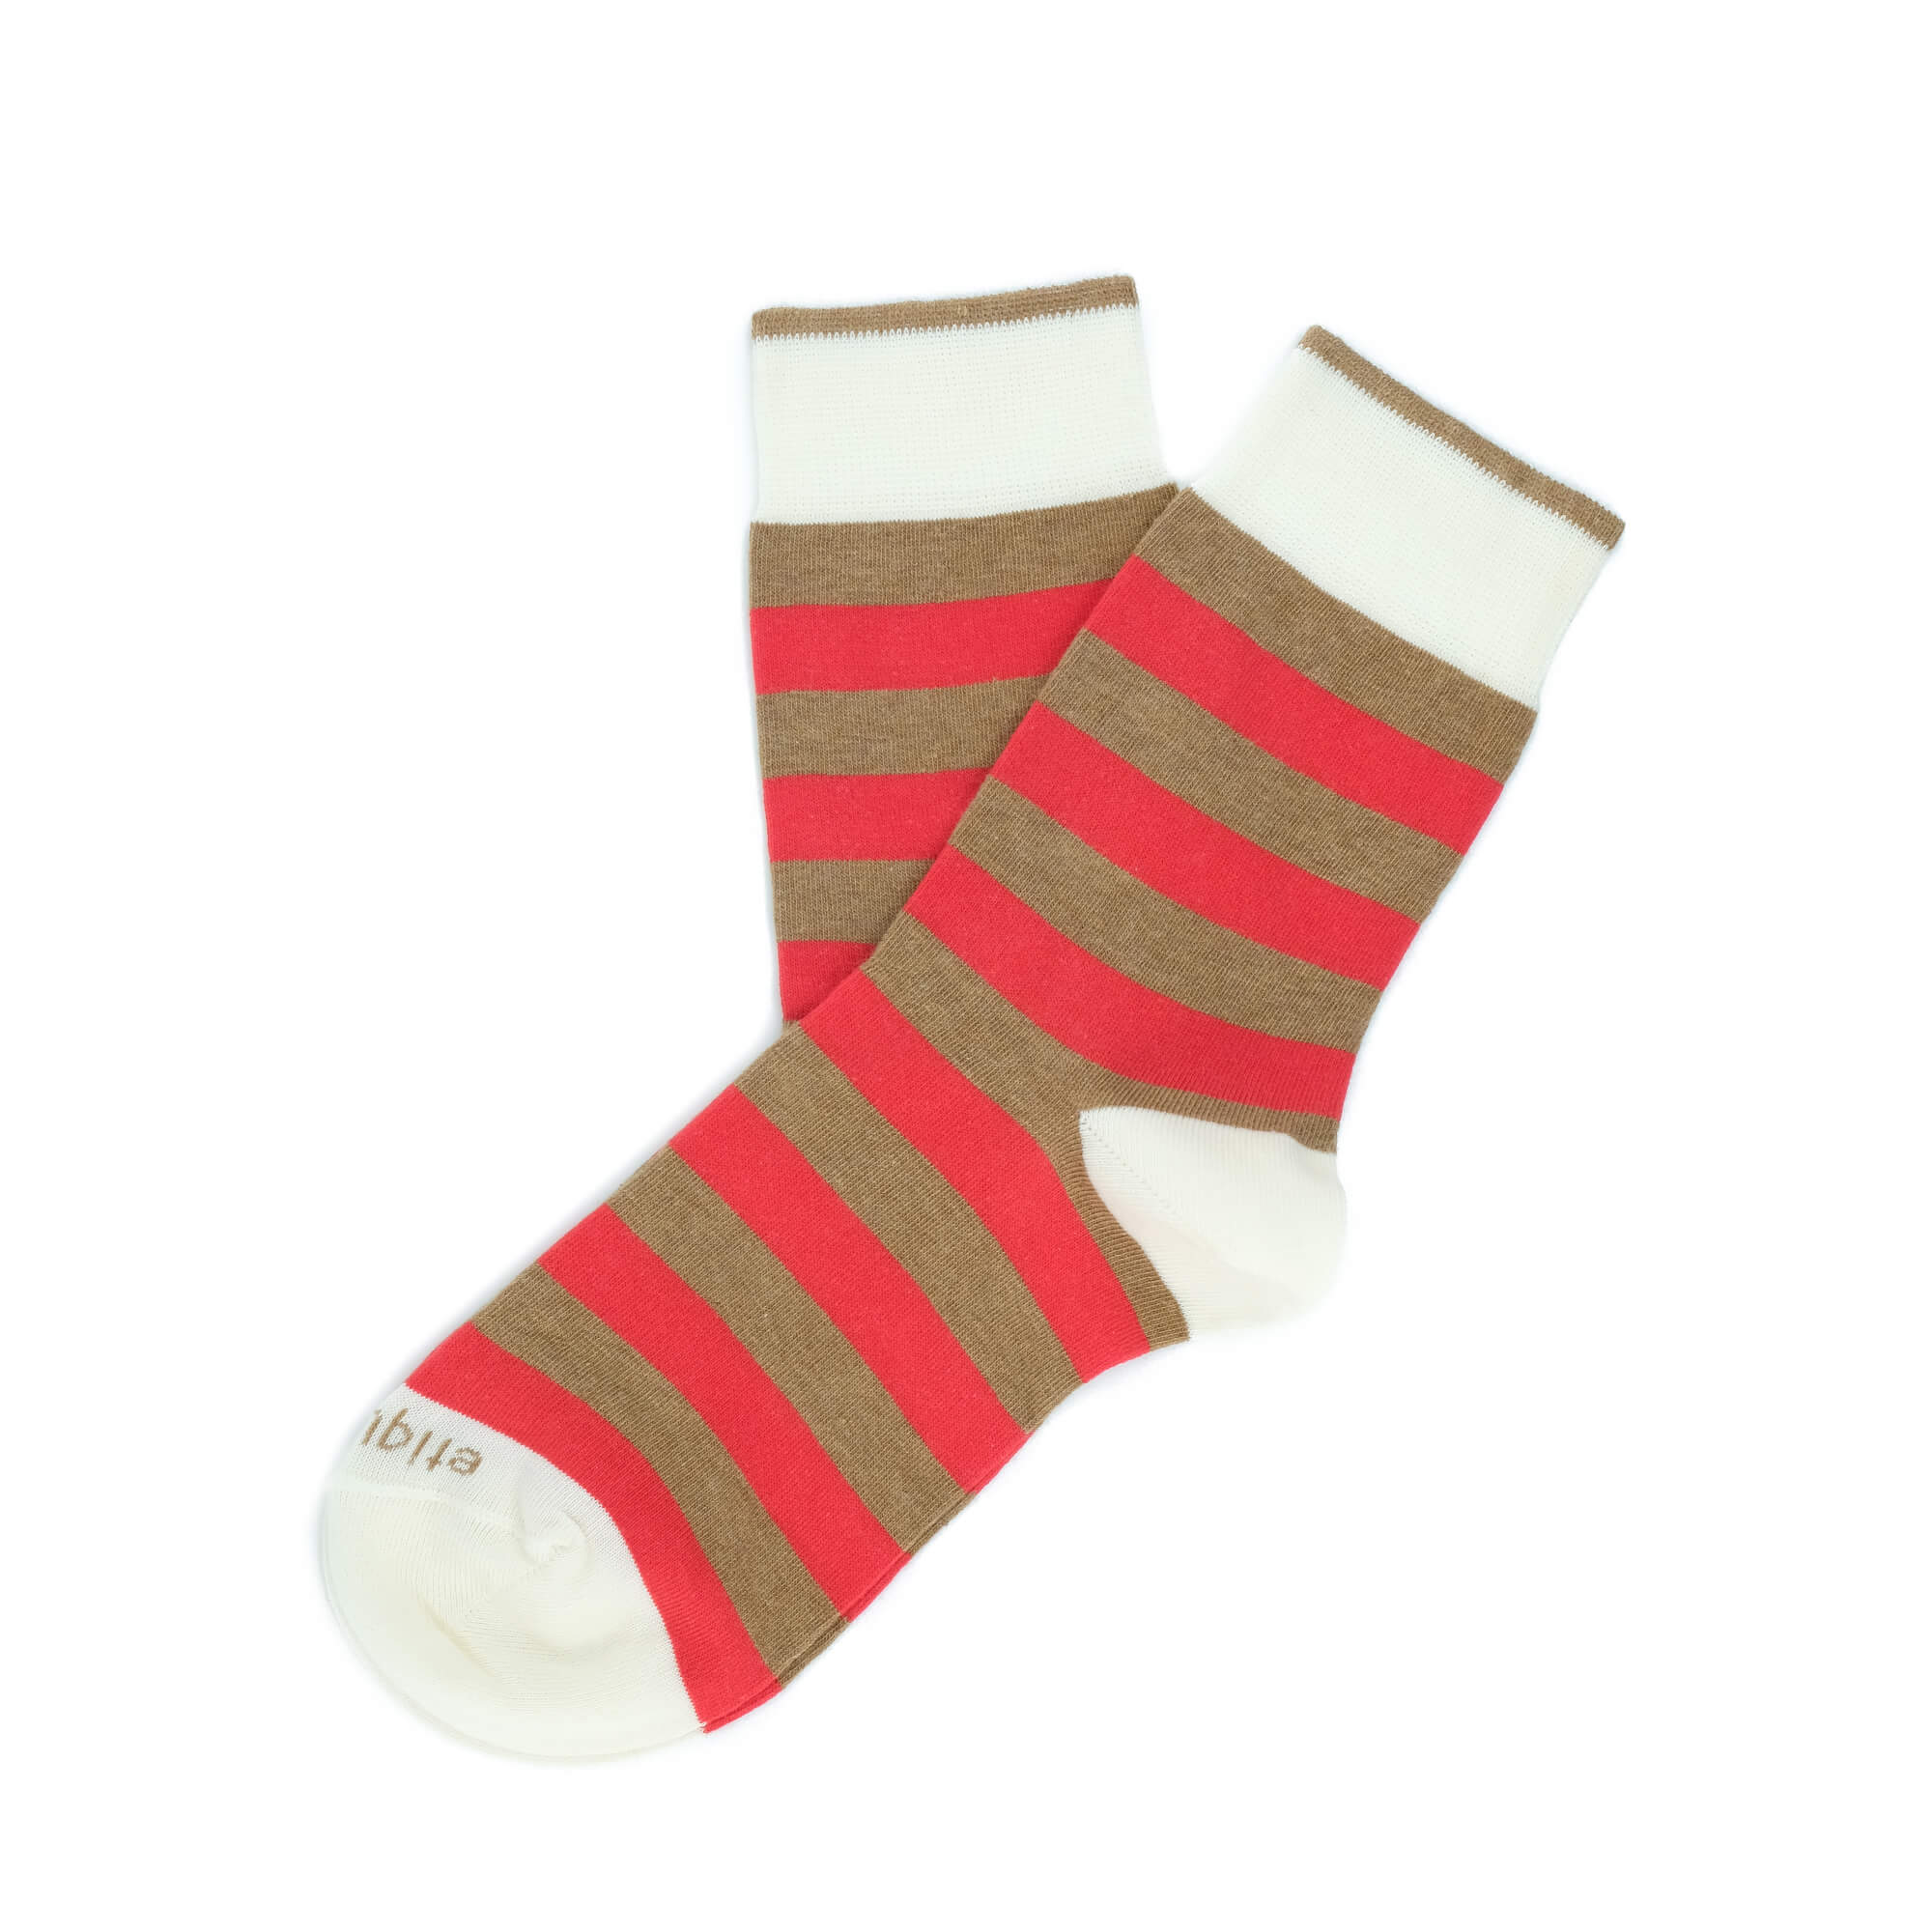 Womens Socks - Rugby Stripes Women's Socks - Brown⎪Etiquette Clothiers